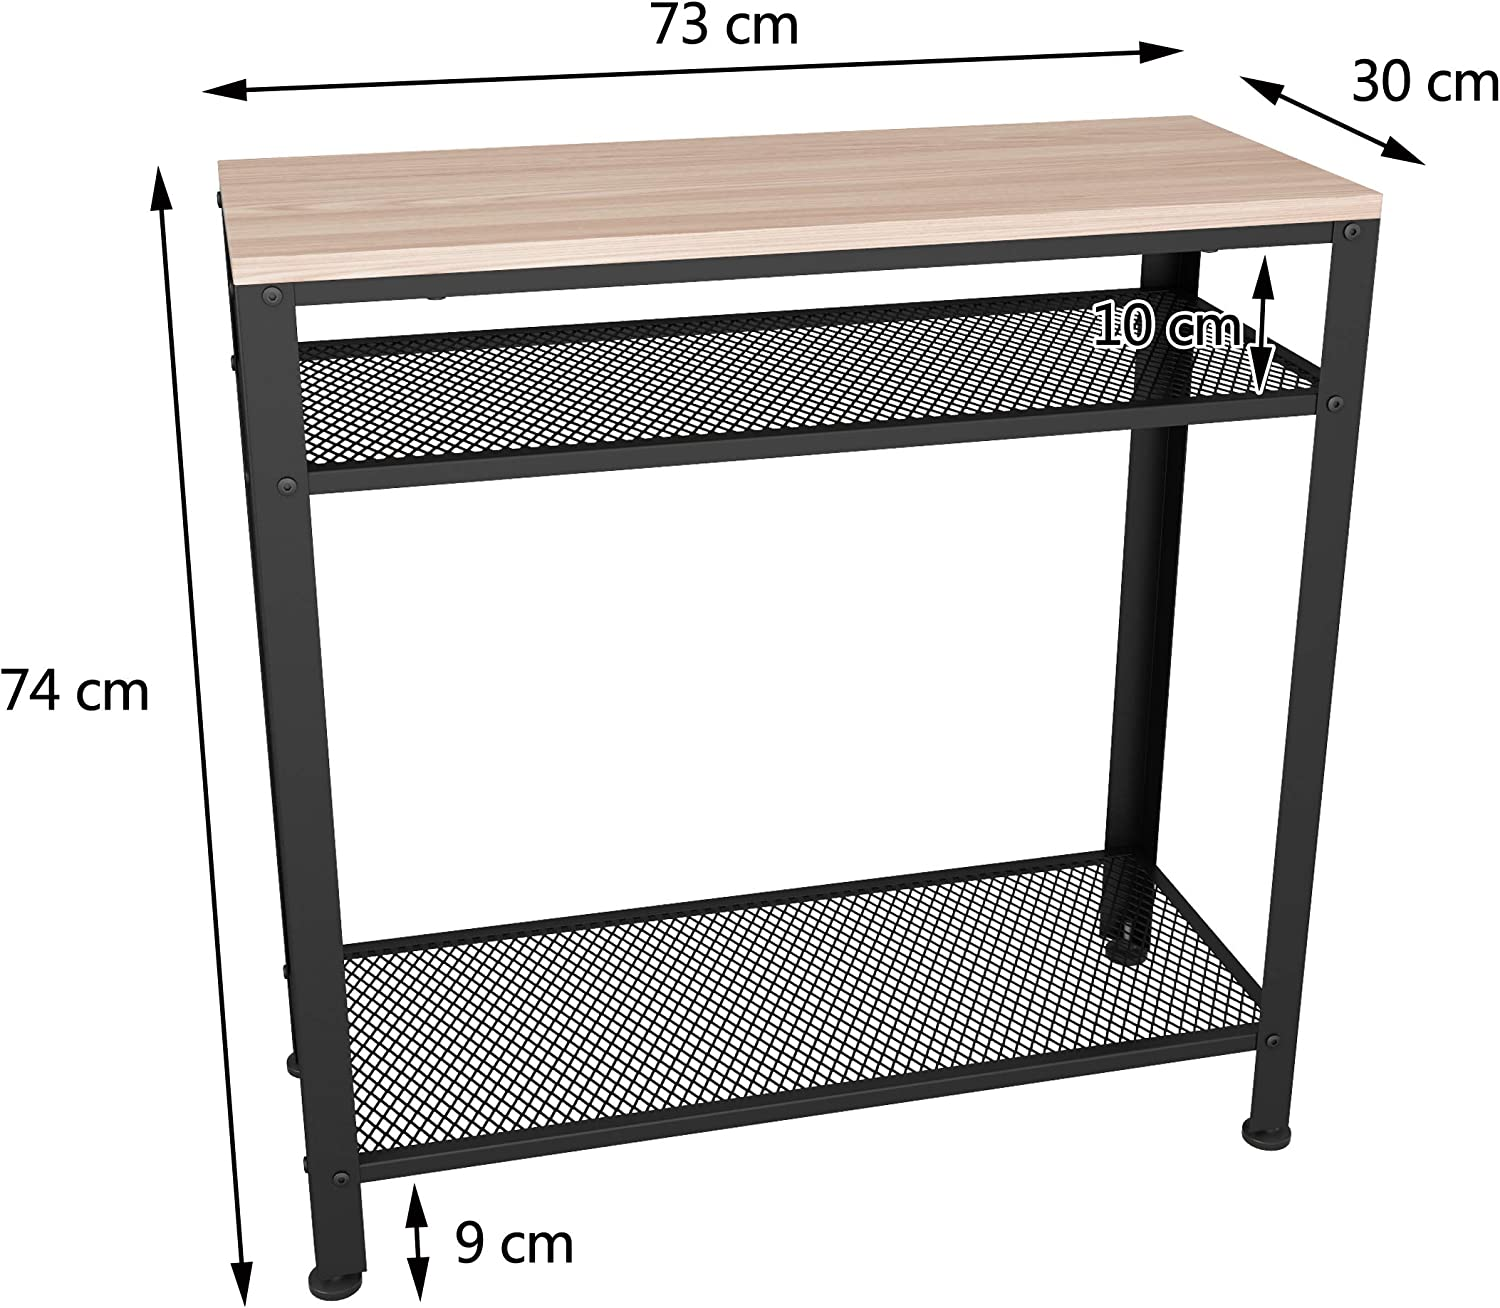 Industrial Sofa Table with Mesh Storage Shelves for Small Spaces White Oak Finish Narrow Foyer JOISCOPE Console Table Entryway Hallway